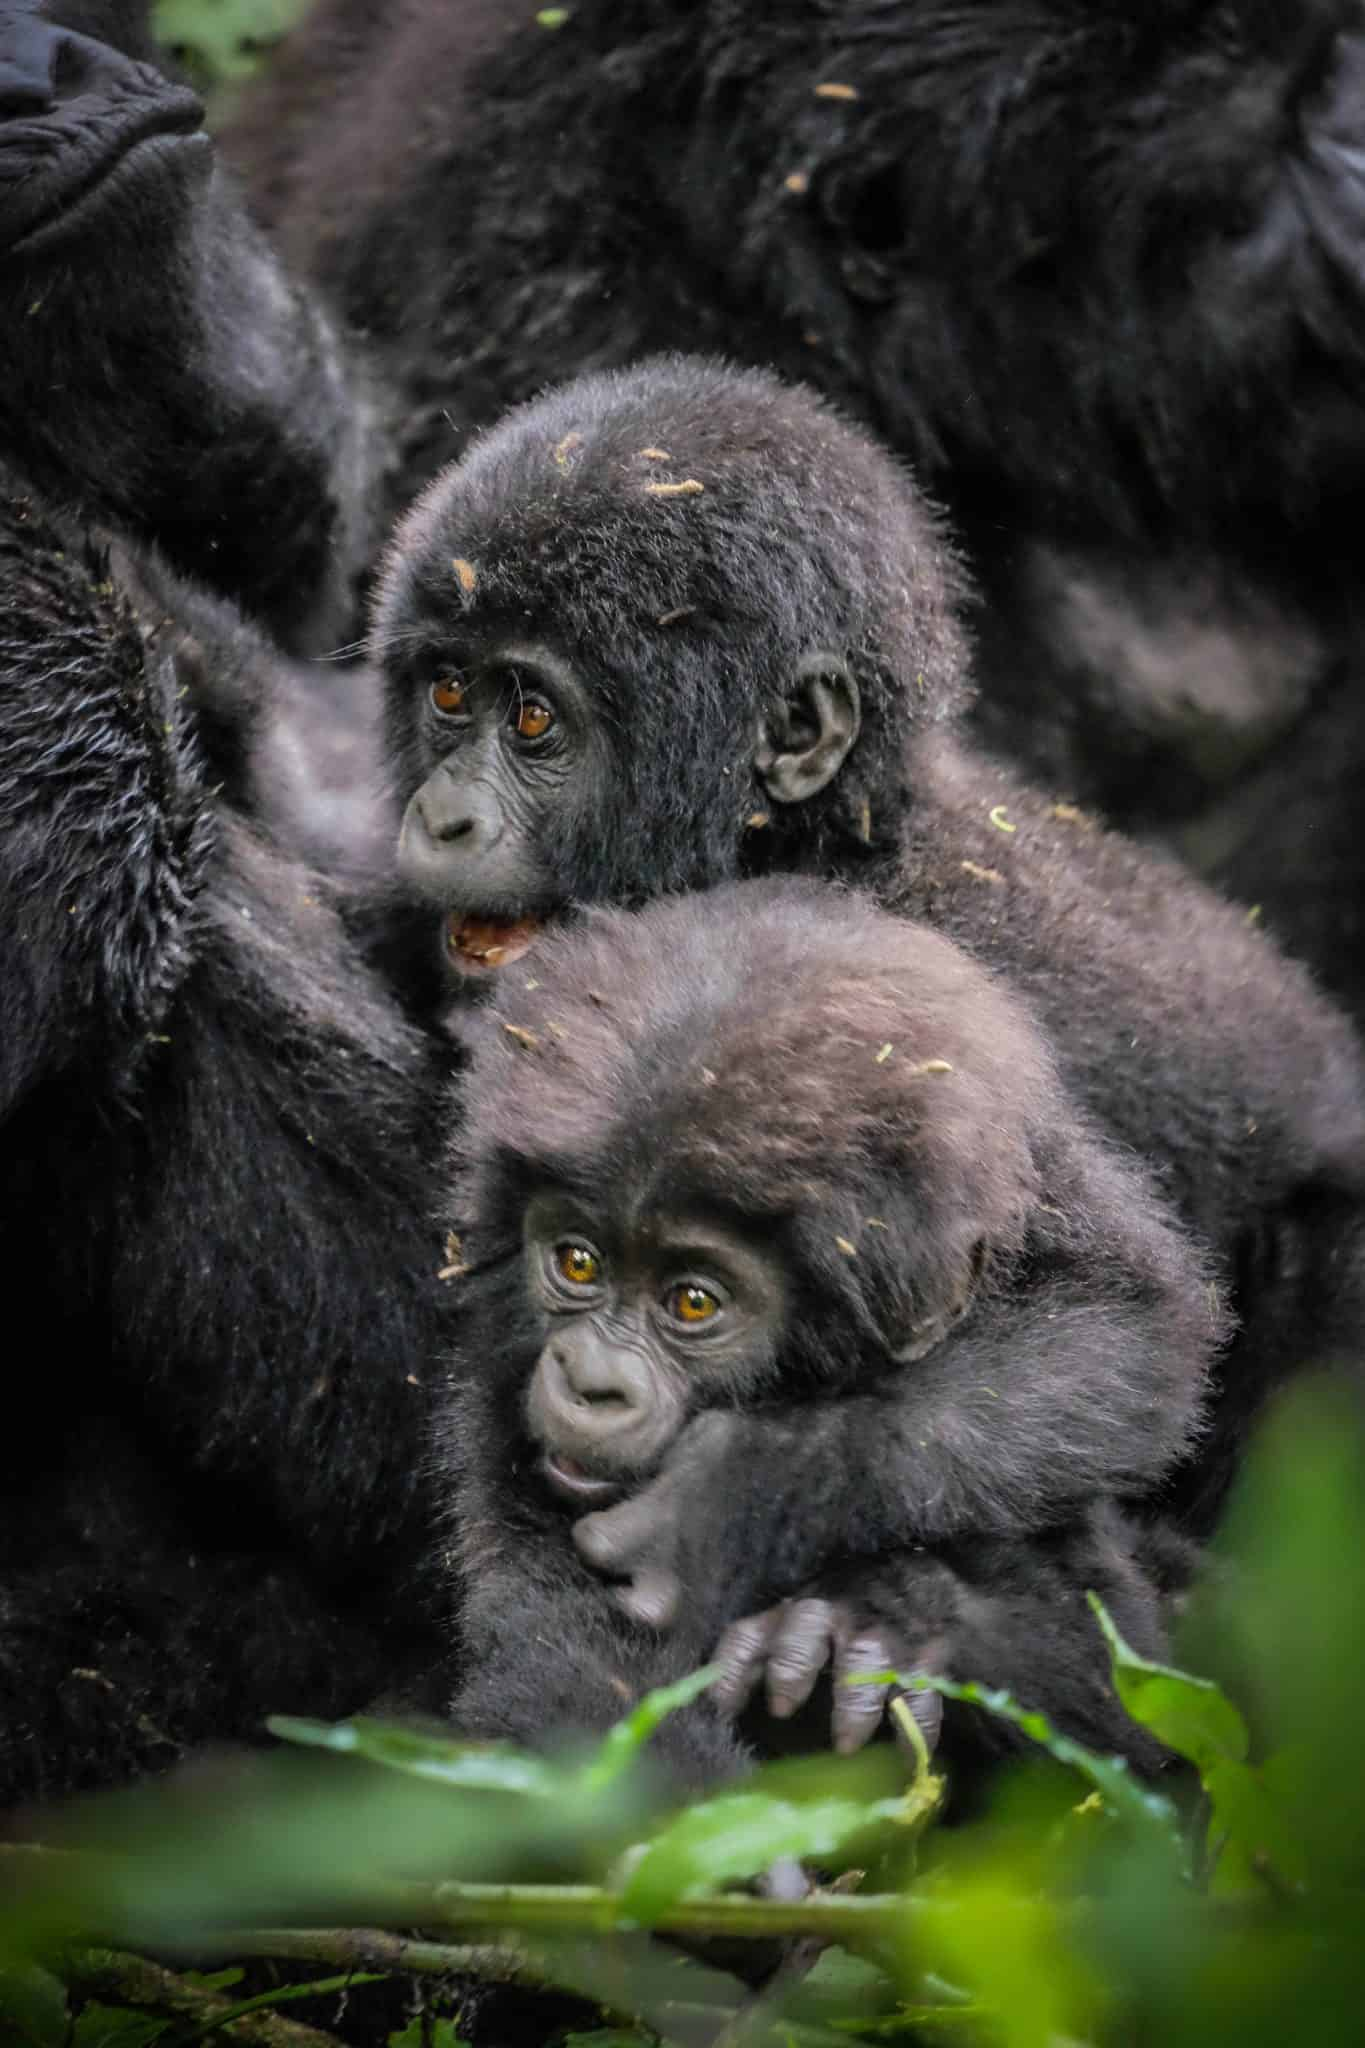 Gorilla Bwindi Impenetrable Forest